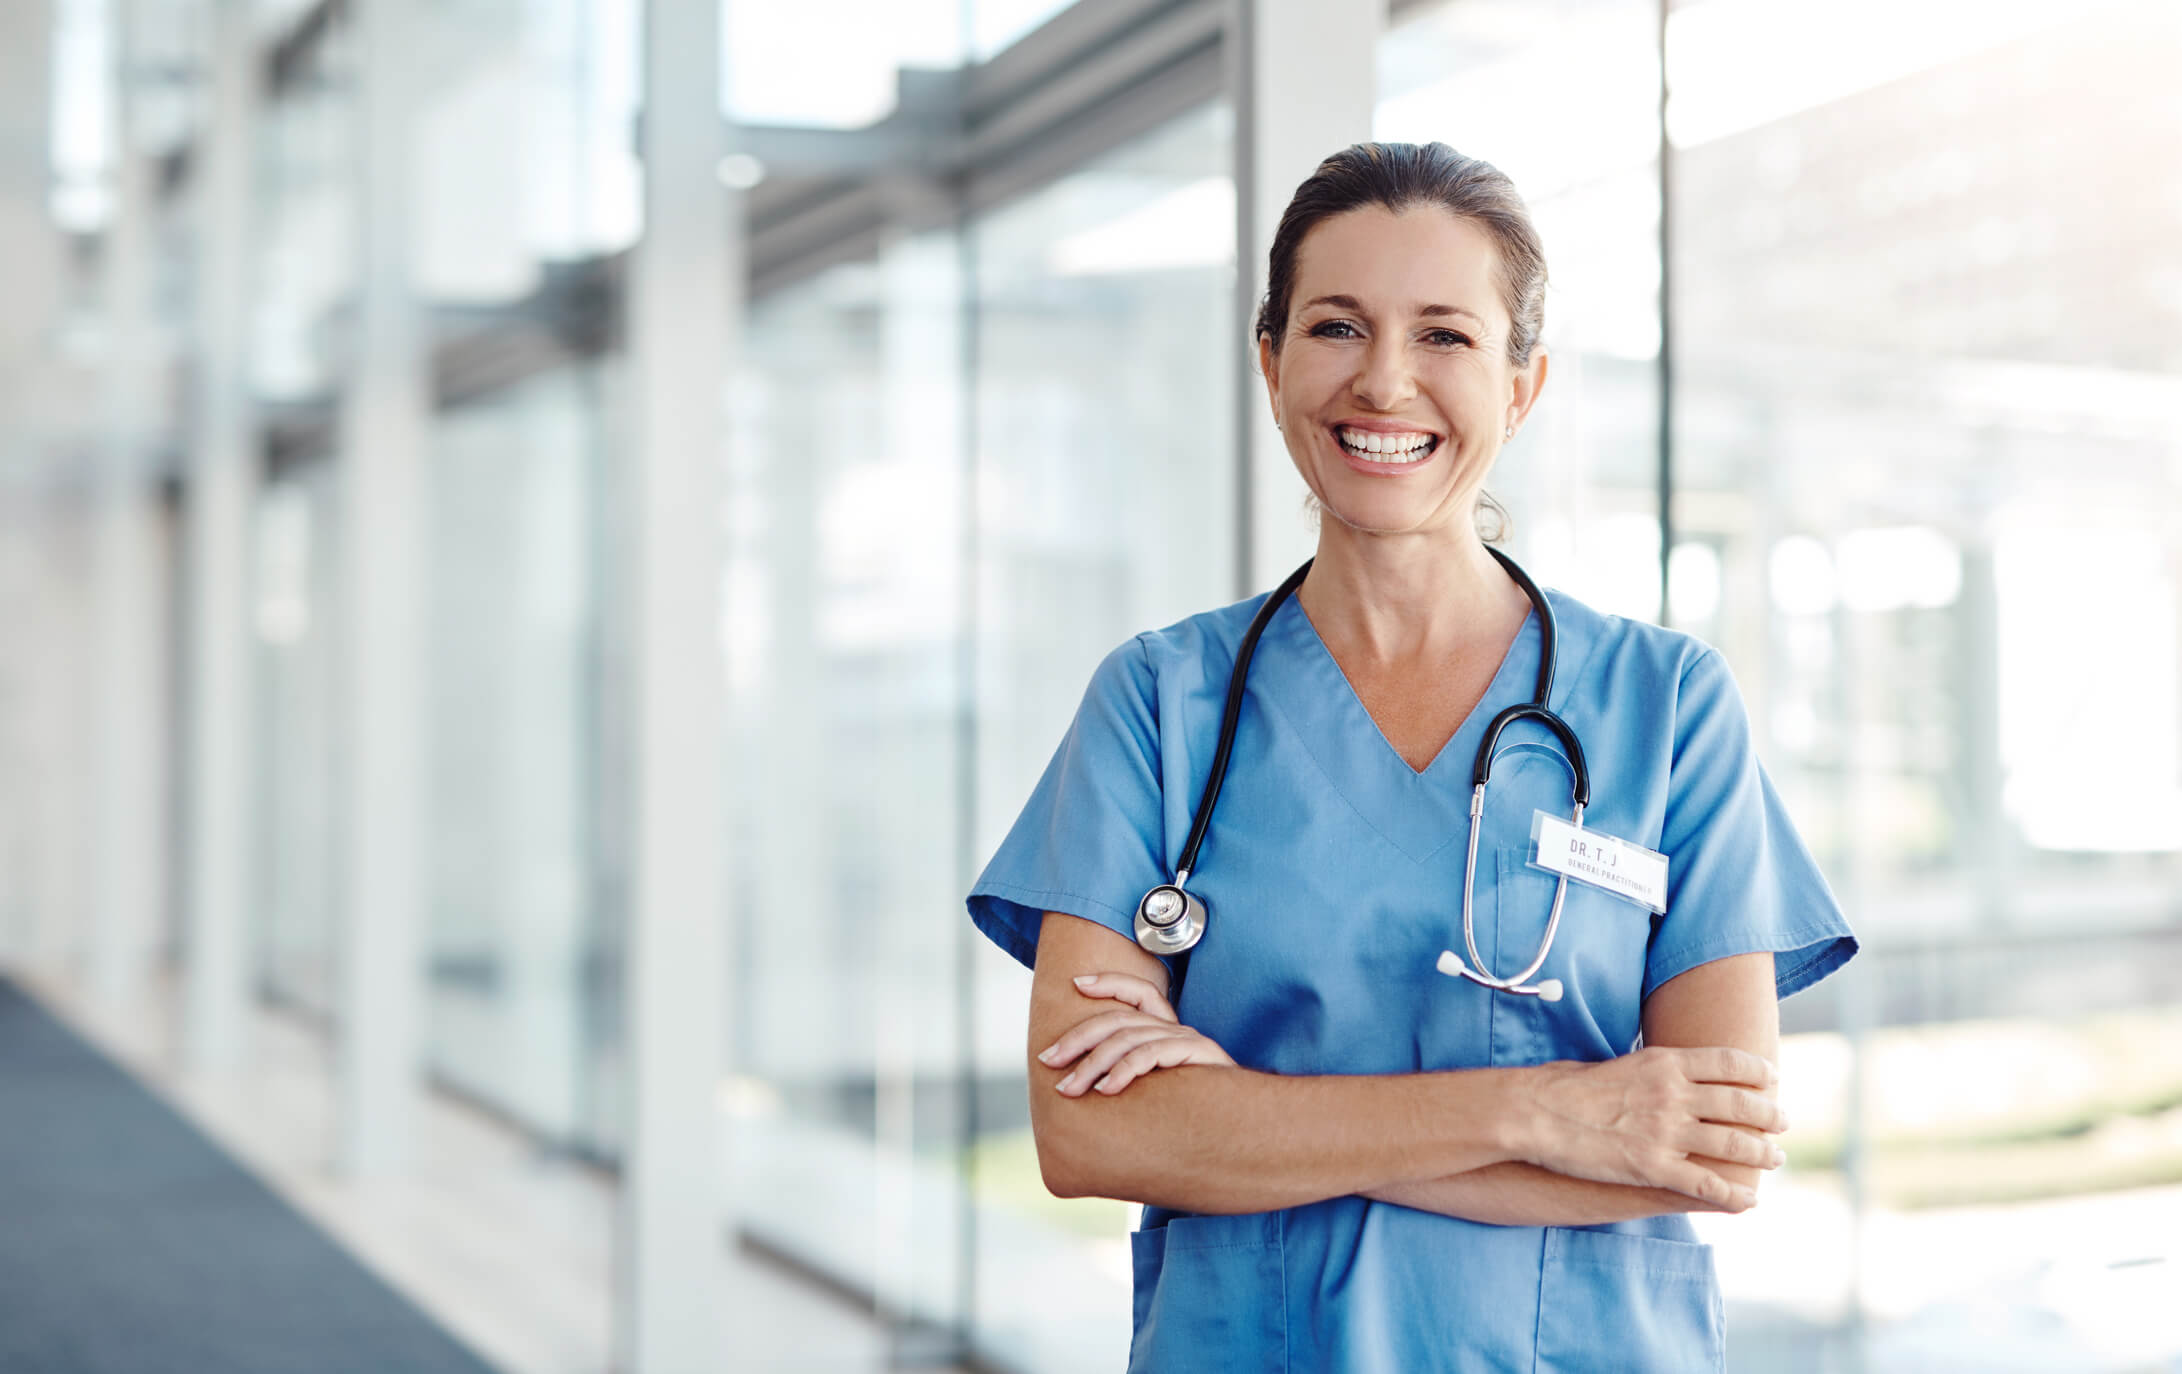 Shot of a female nurse standing confidently with her arms crossed